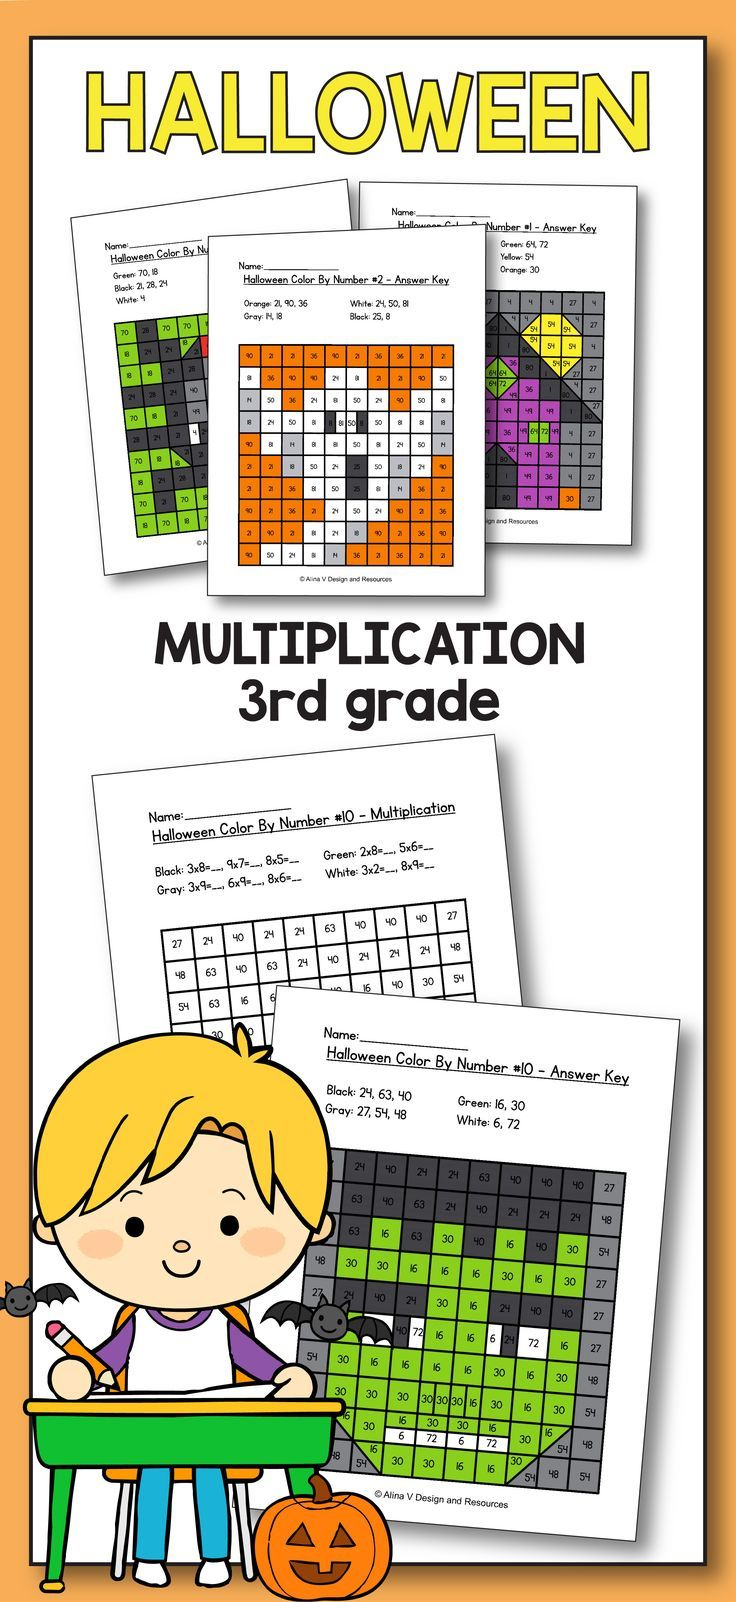 Halloween Multiplication Math Worksheets for 3rd grade kids is fun with  these hundreds c…   Halloween math activities [ 1602 x 736 Pixel ]